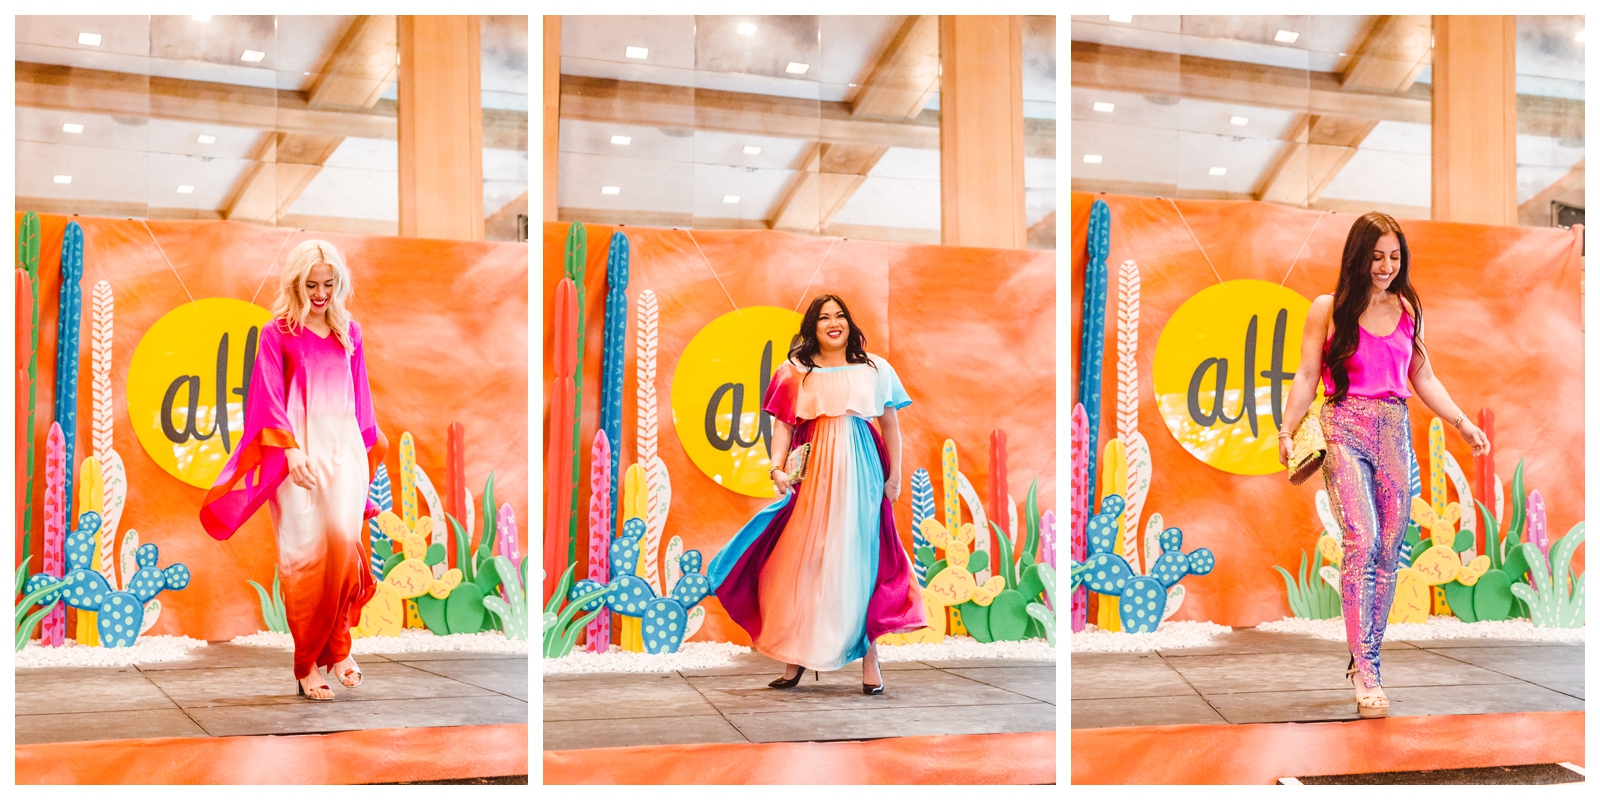 the-house-of-perna-runway-show-at-alt-summit-palm-springs-brooke-michelle-photography-4-photo.jpg